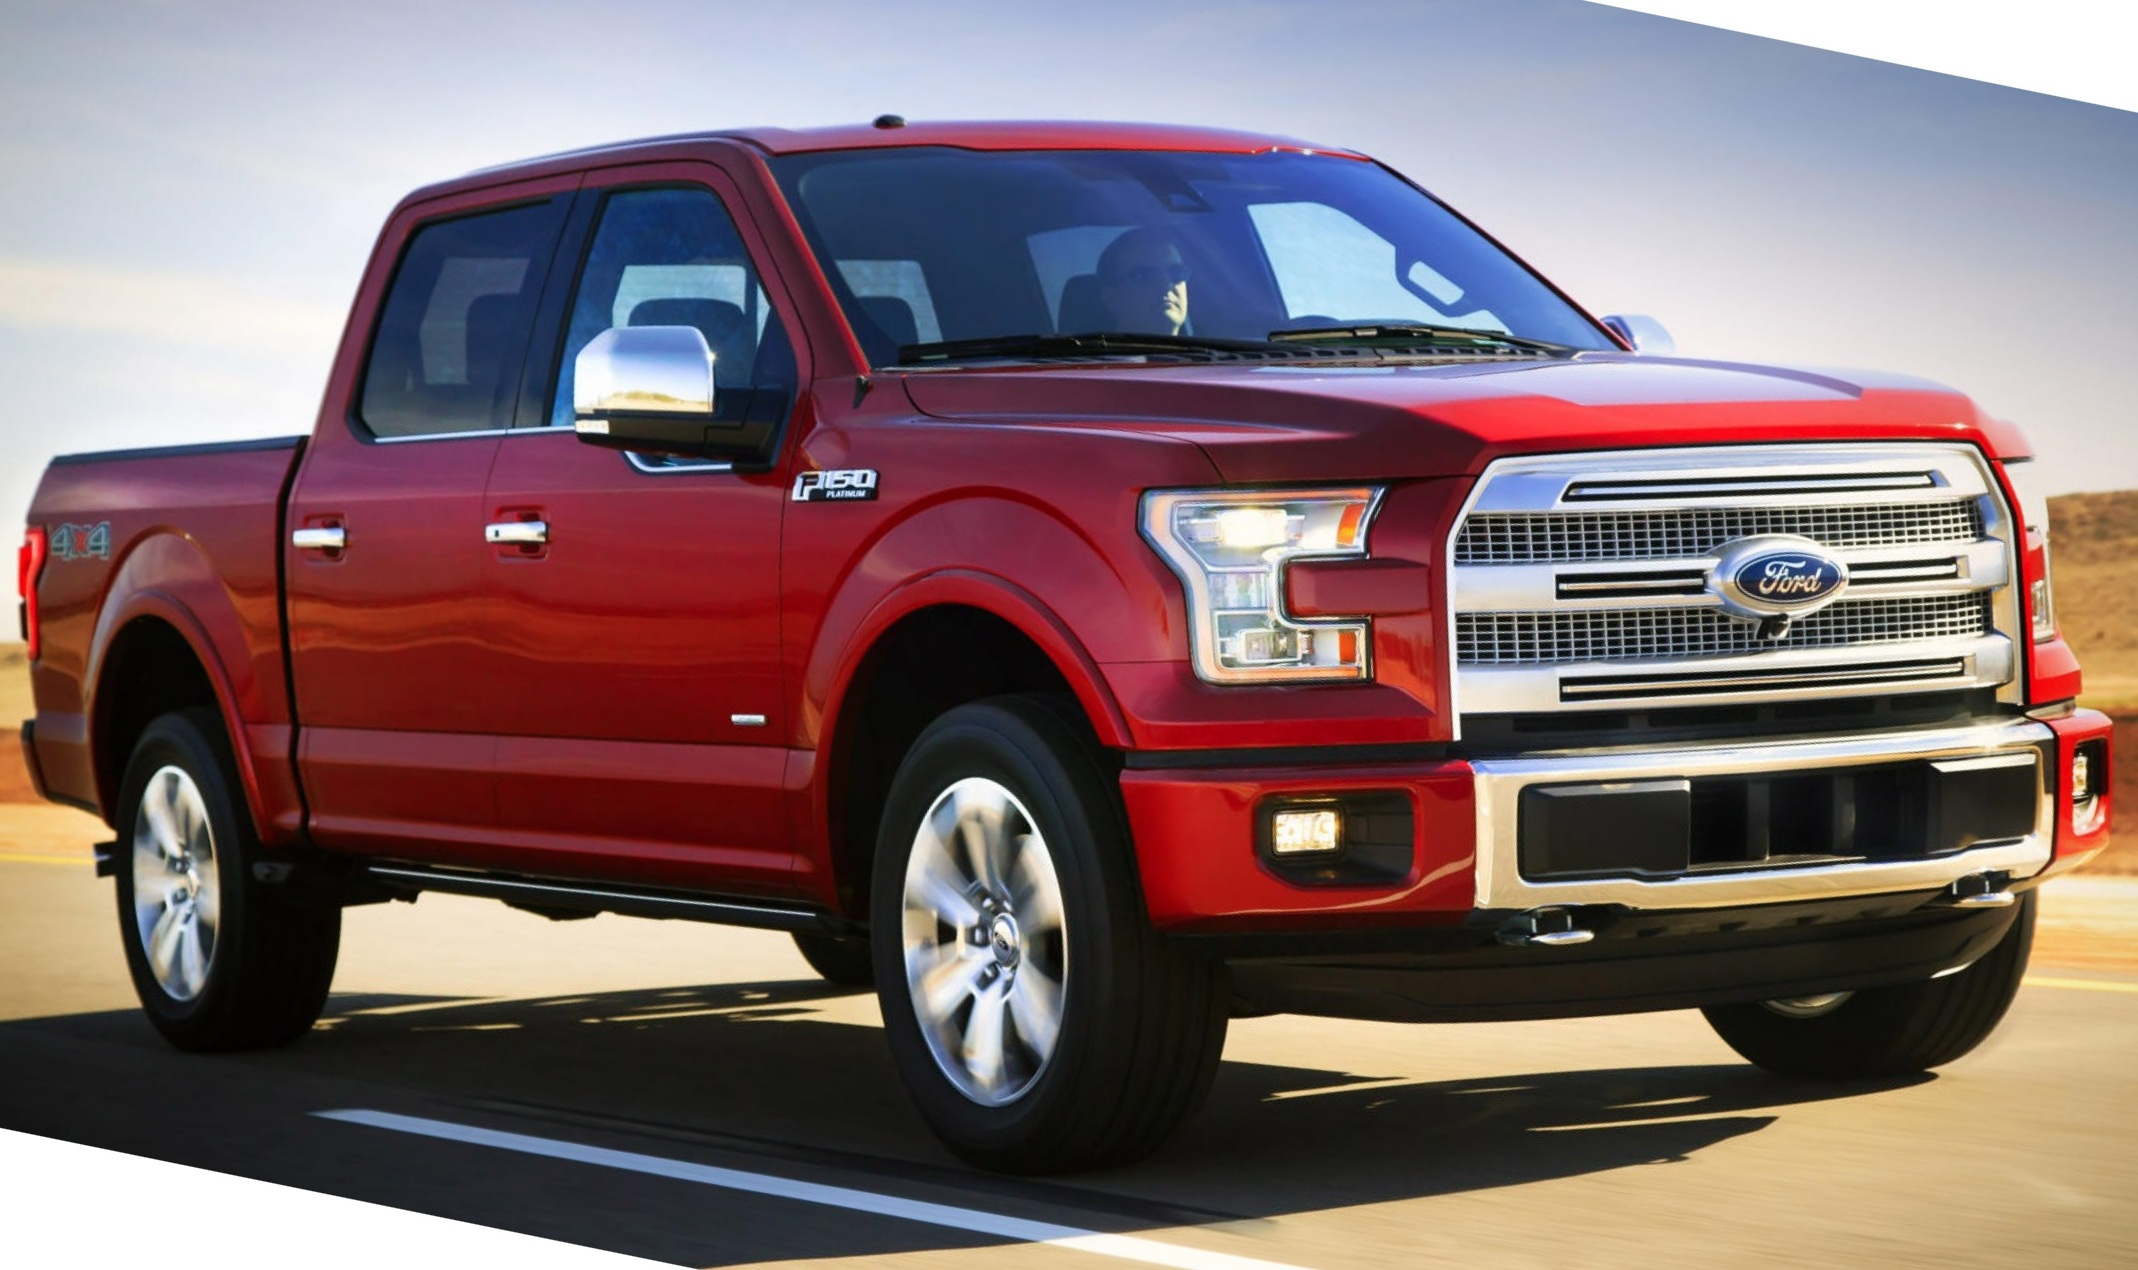 Ford F 150 News 2015 ford f 150 Wallpapers 10 HD Wallpapers 2138x1270